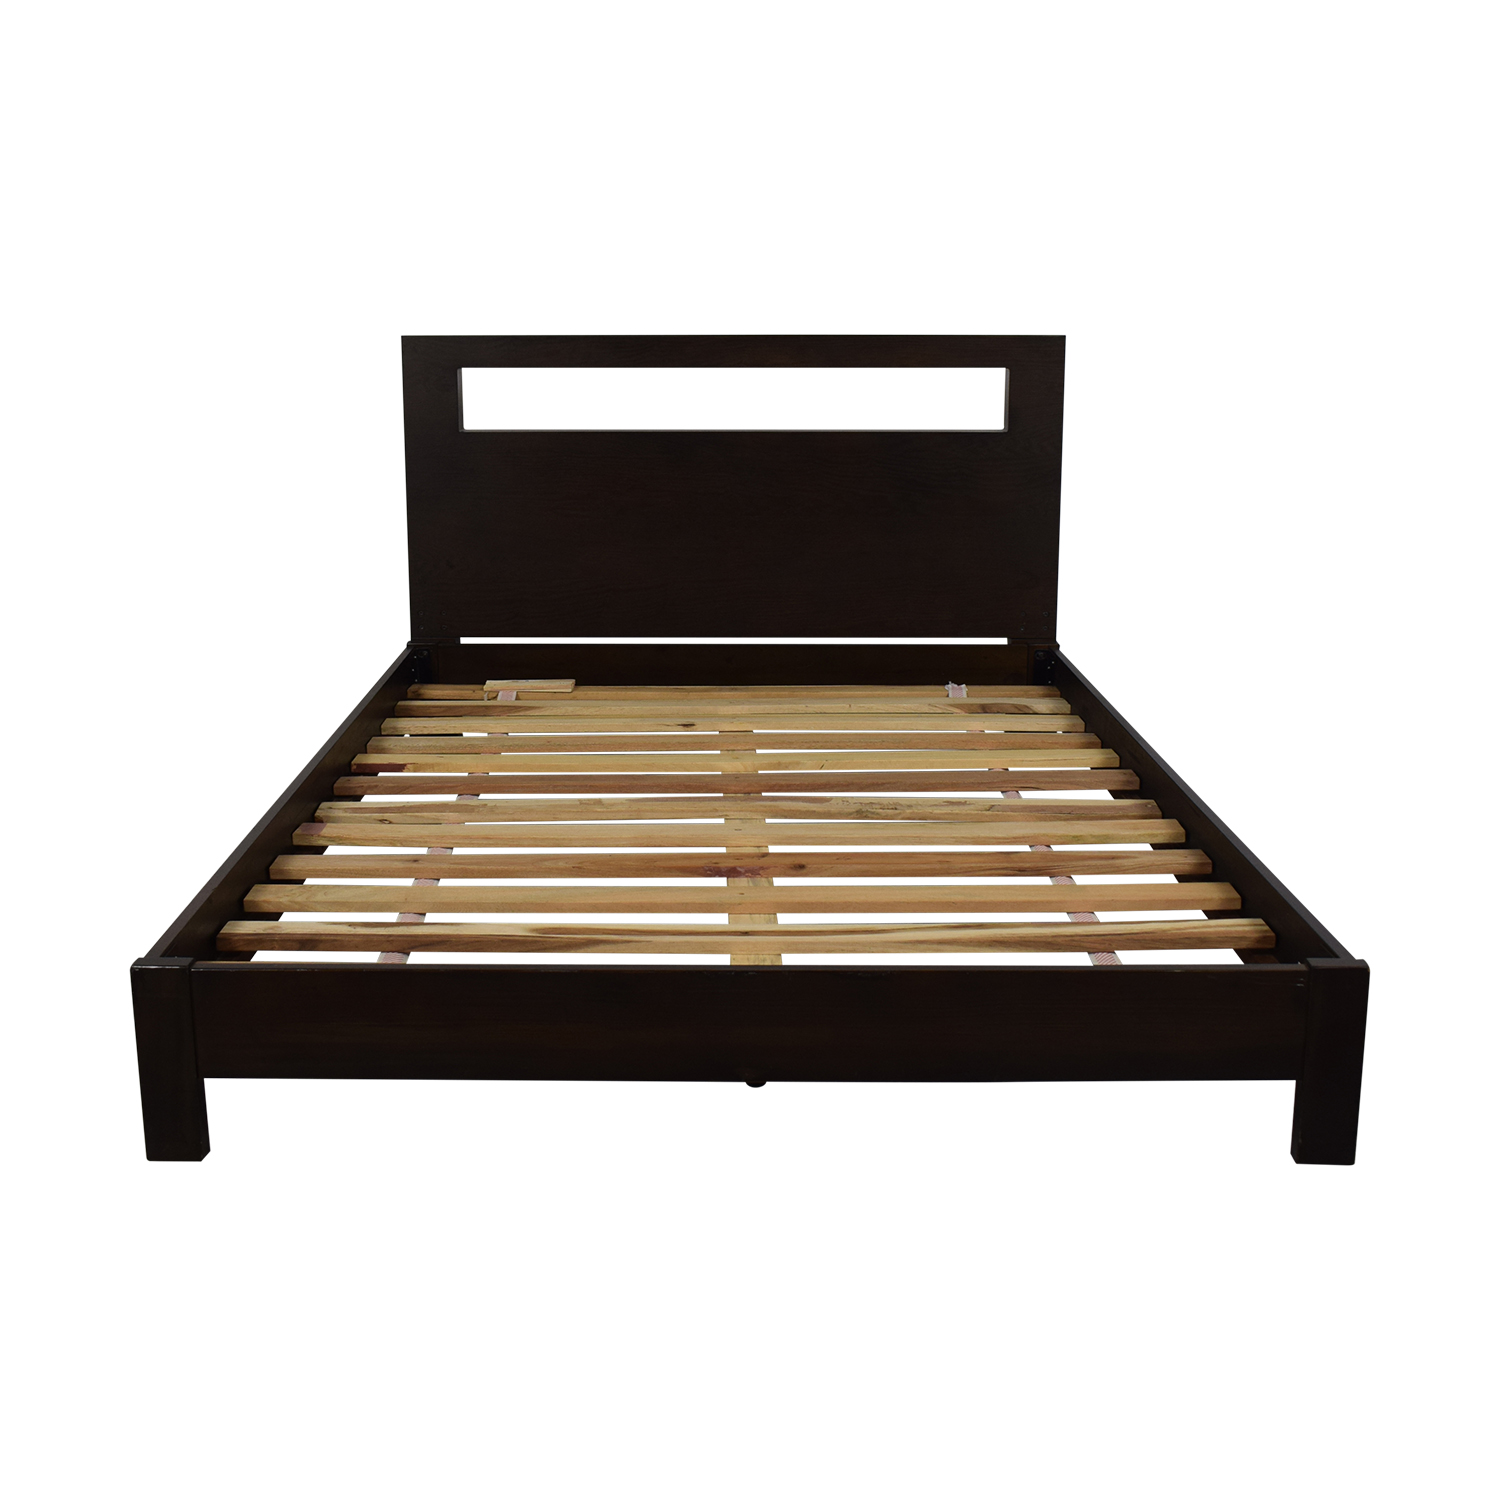 West Elm West Elm Full Platform Bed Frame / Beds